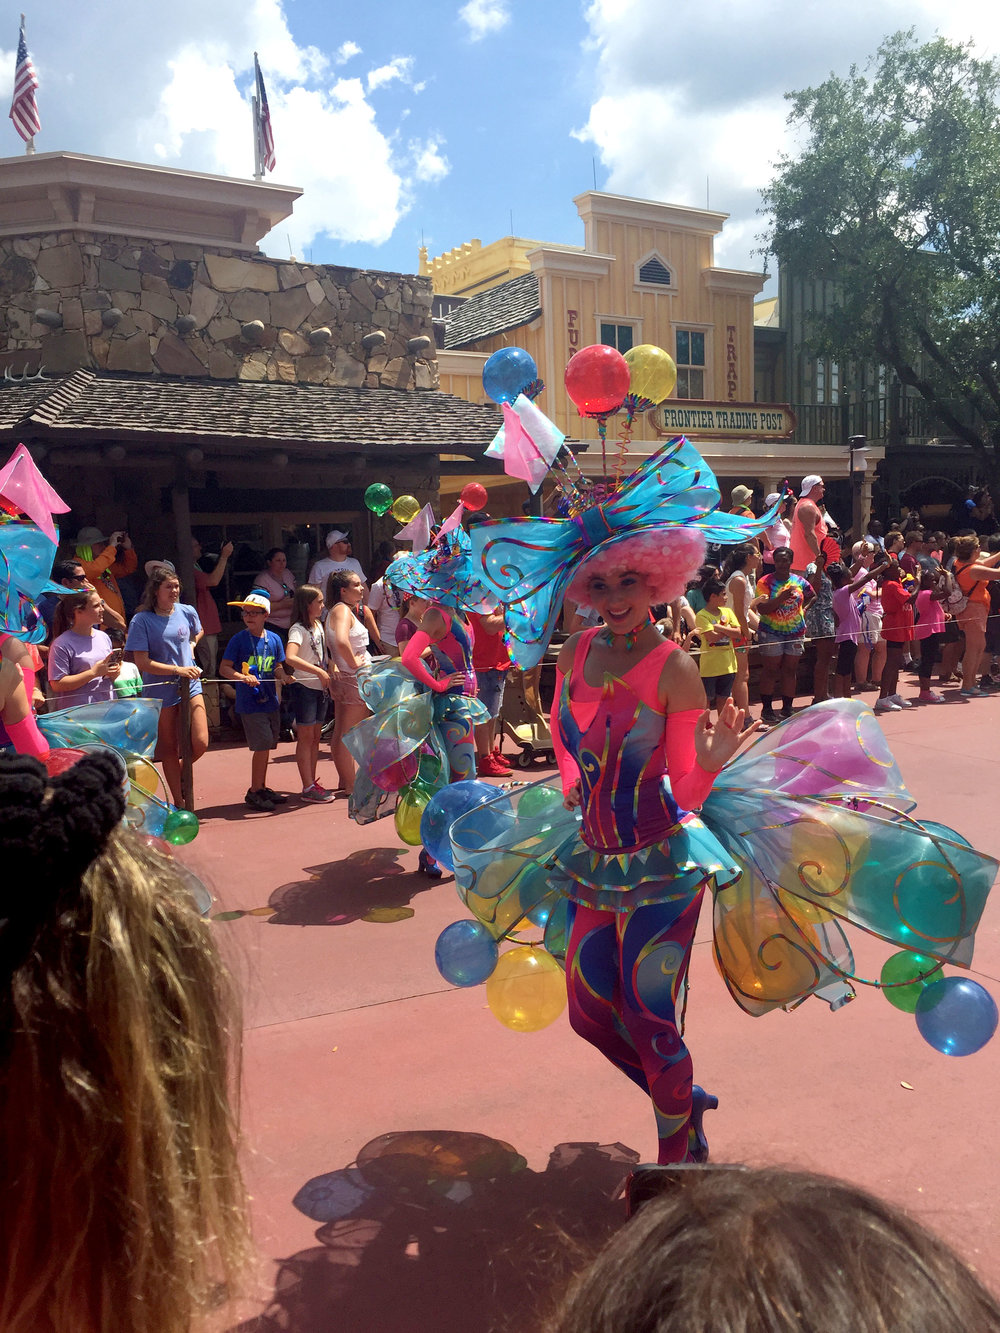 Another fabulously colorful outfit! Seriously, Disney's costume department has outdone themselves with this parade.